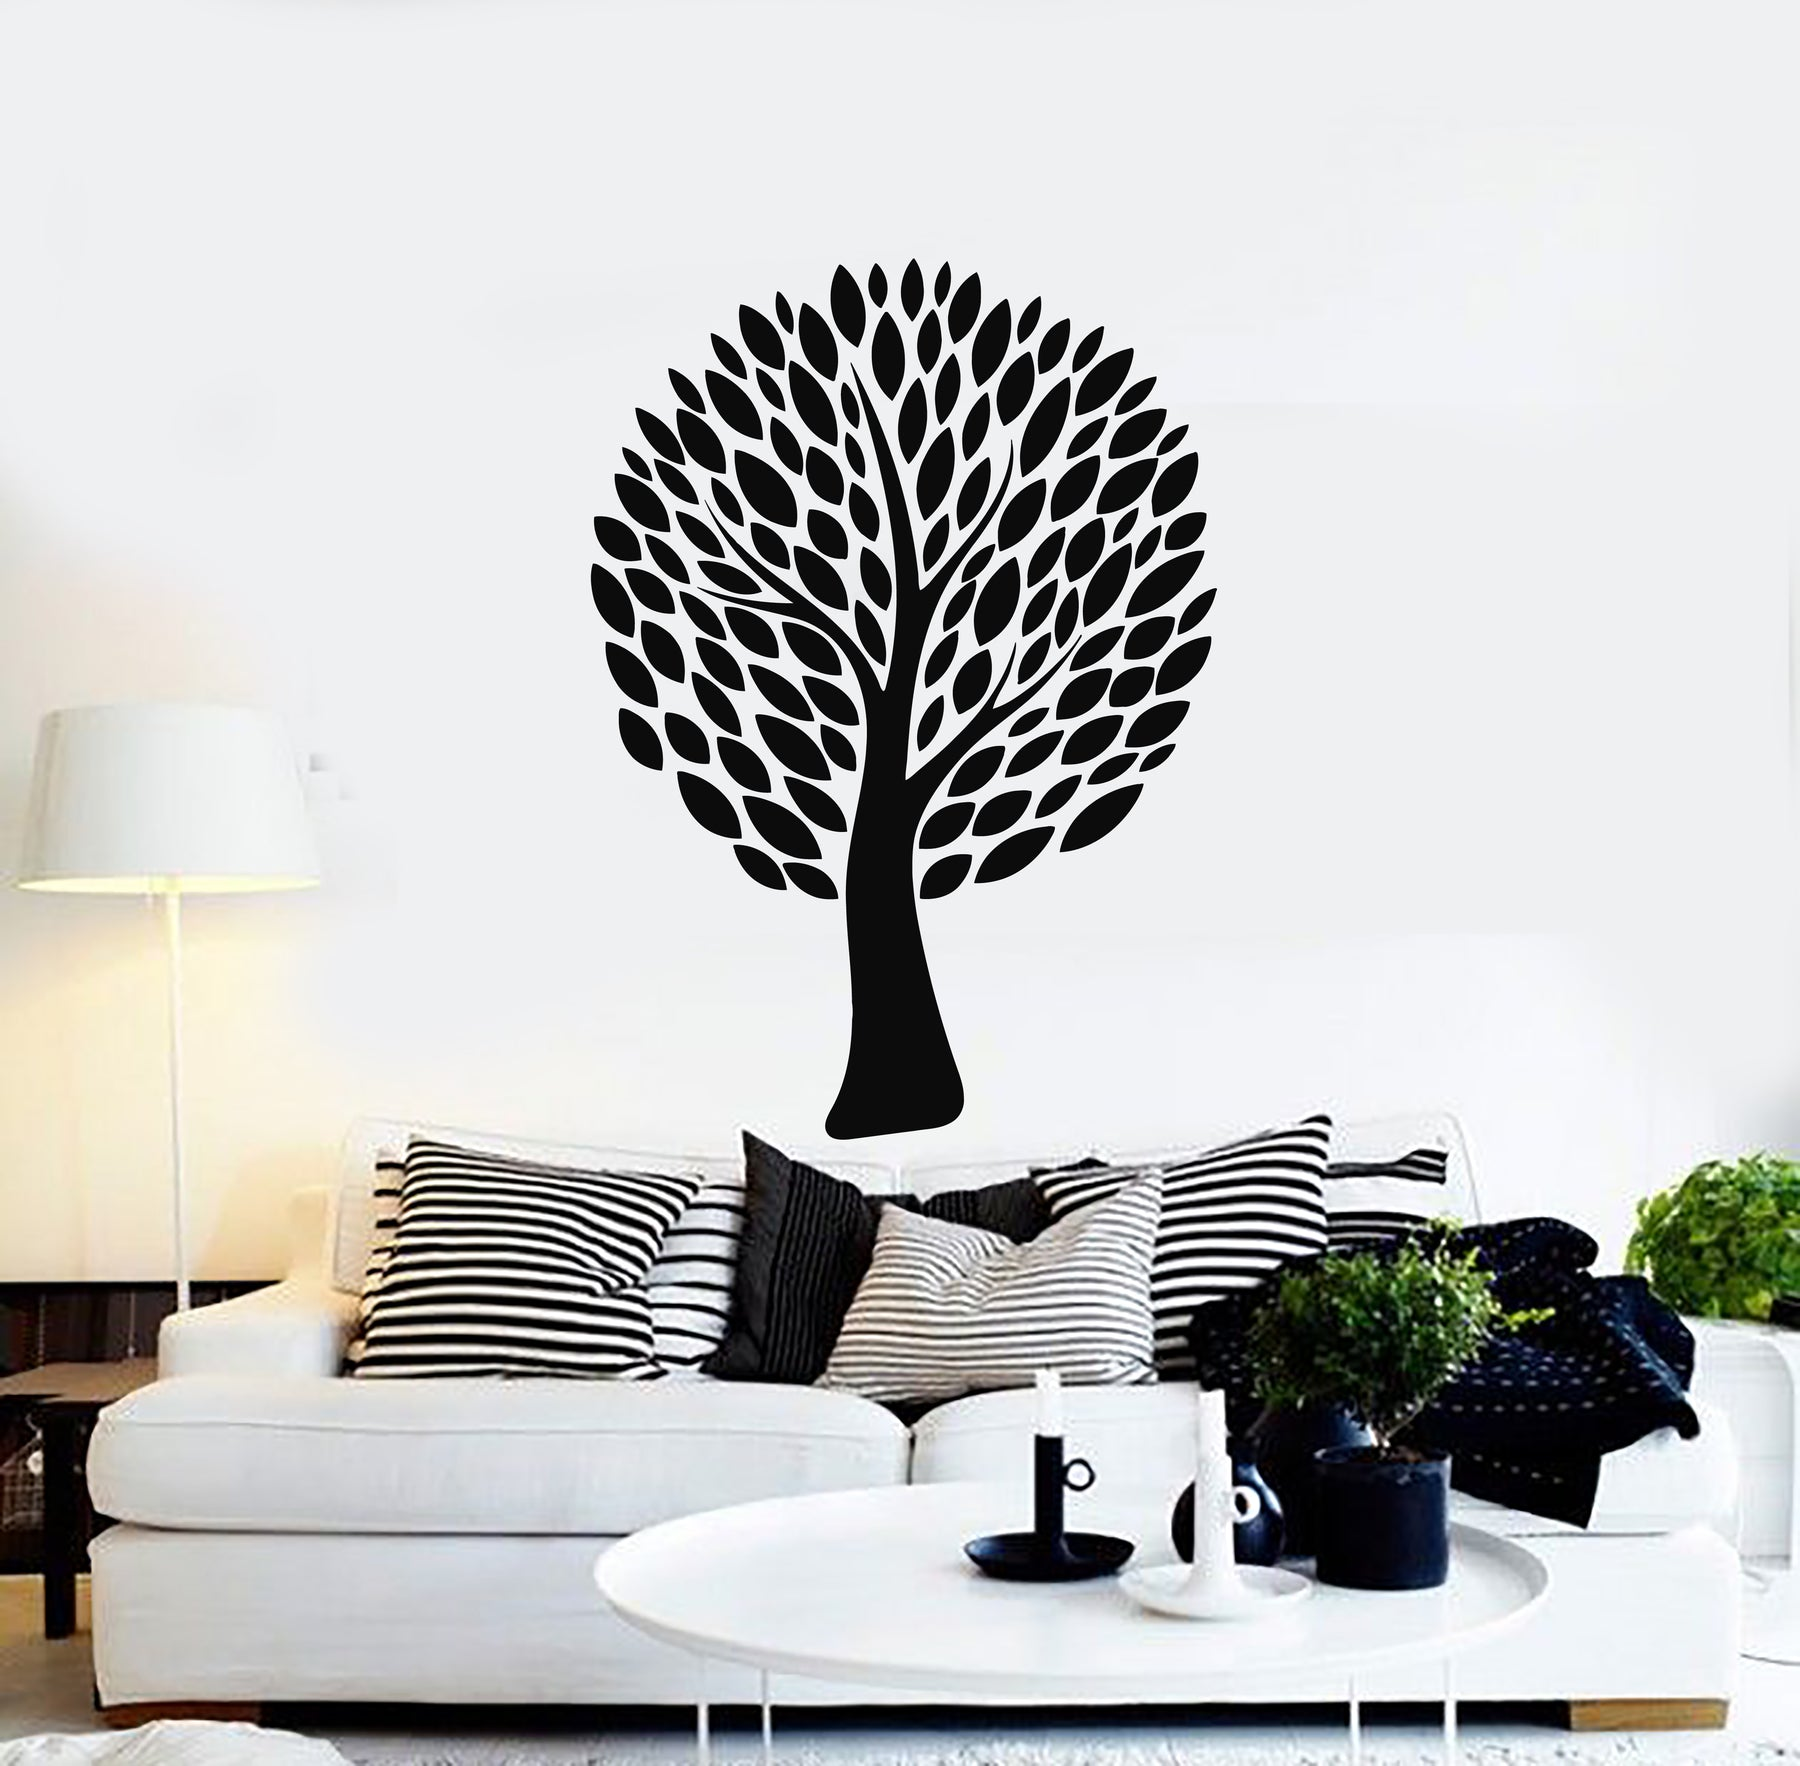 Vinyl Wall Decal Beautiful Tree Leaves Home Room Decor Idea Stickers Mural (g896)